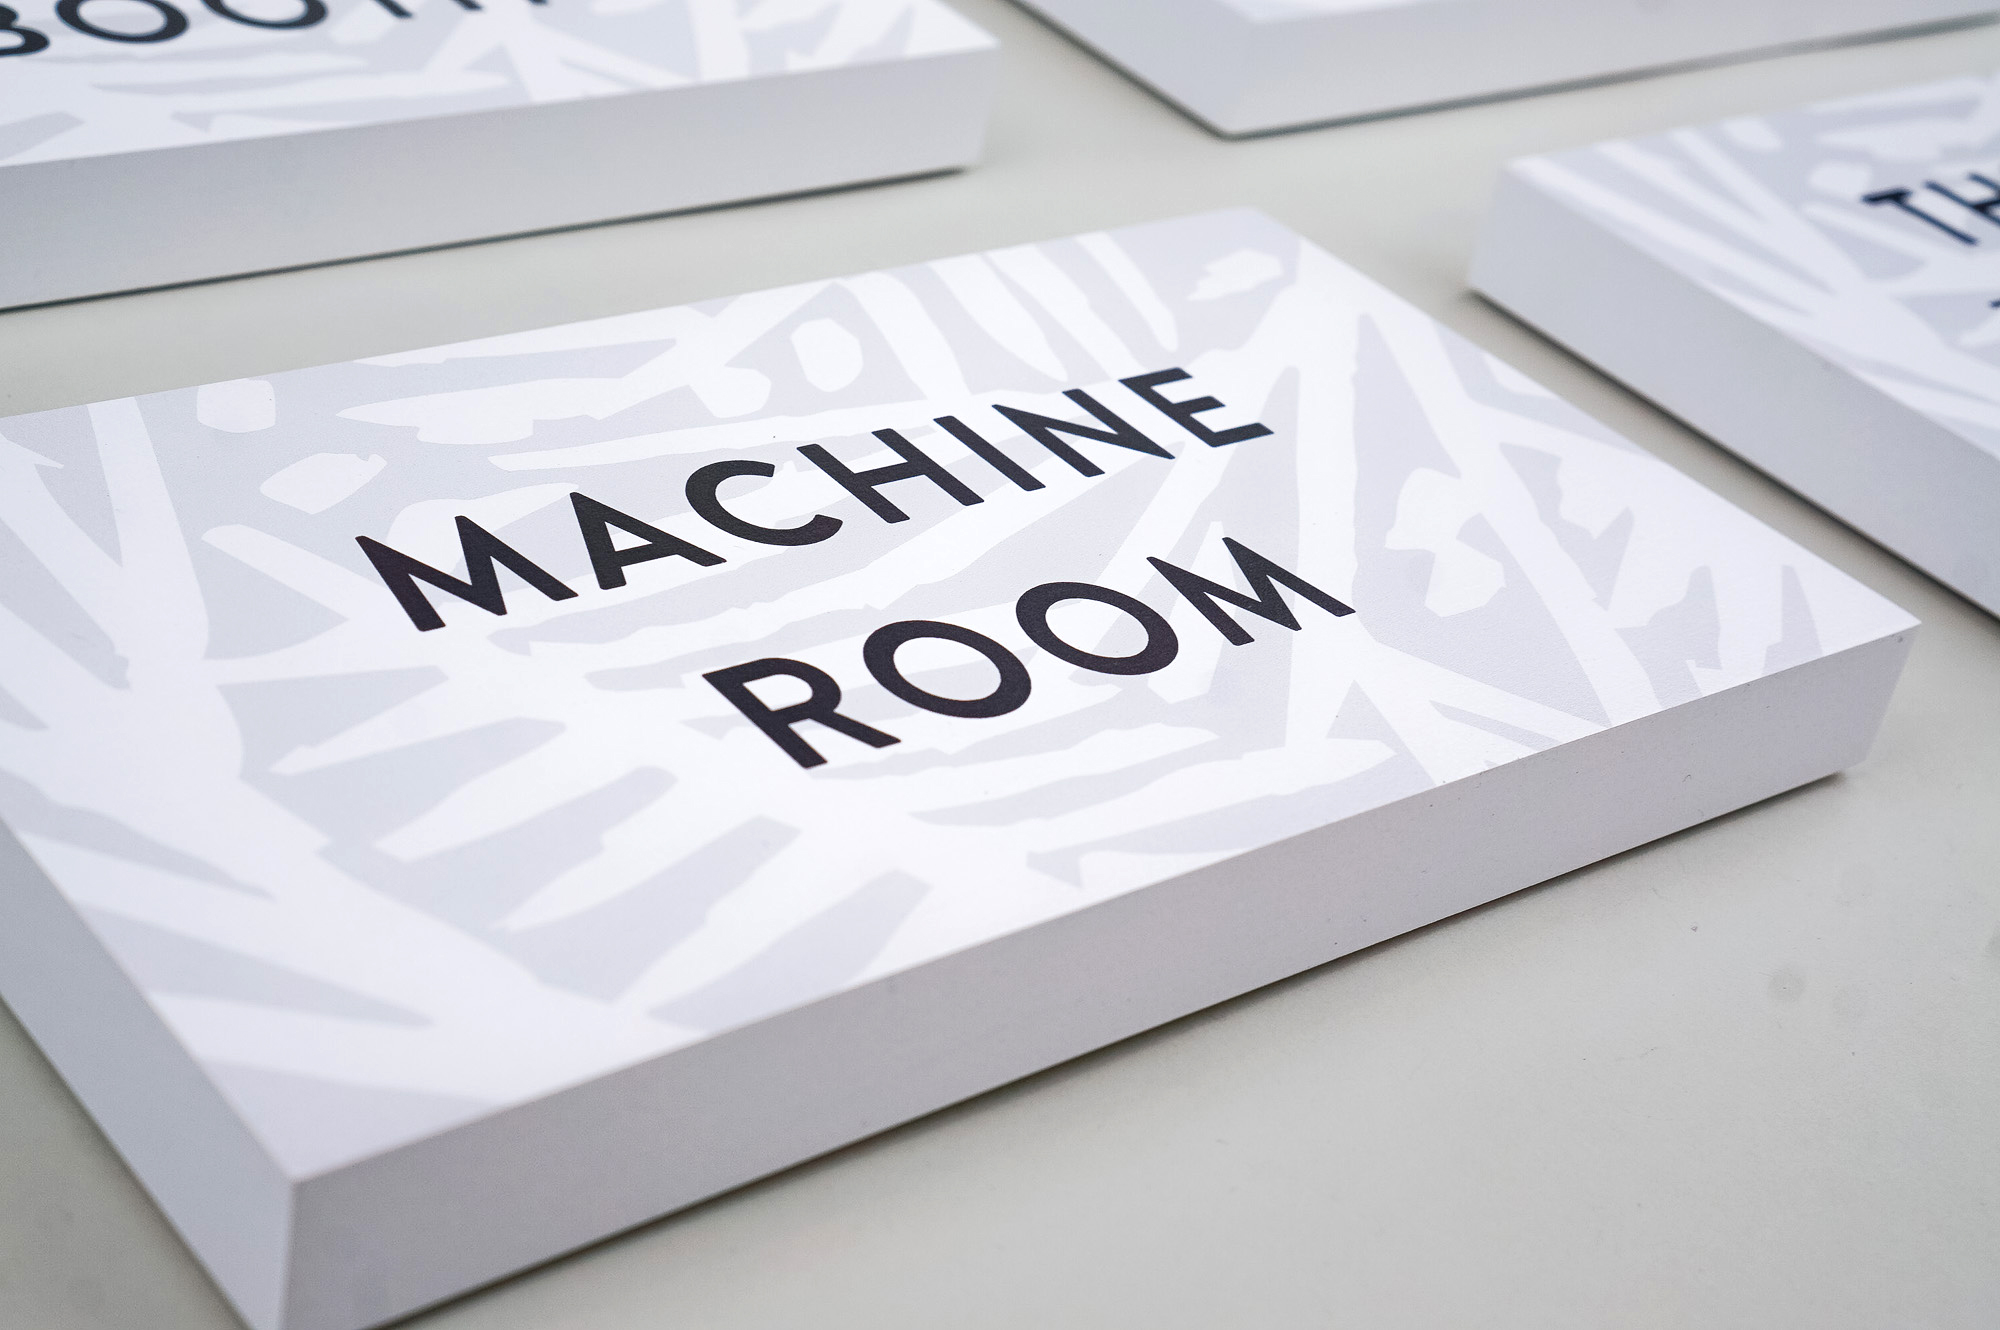 Room signs for Fotokem's Margarita Mix®, a Los Angeles facility that provides audio services for commercial advertising, television, video games and DVD.